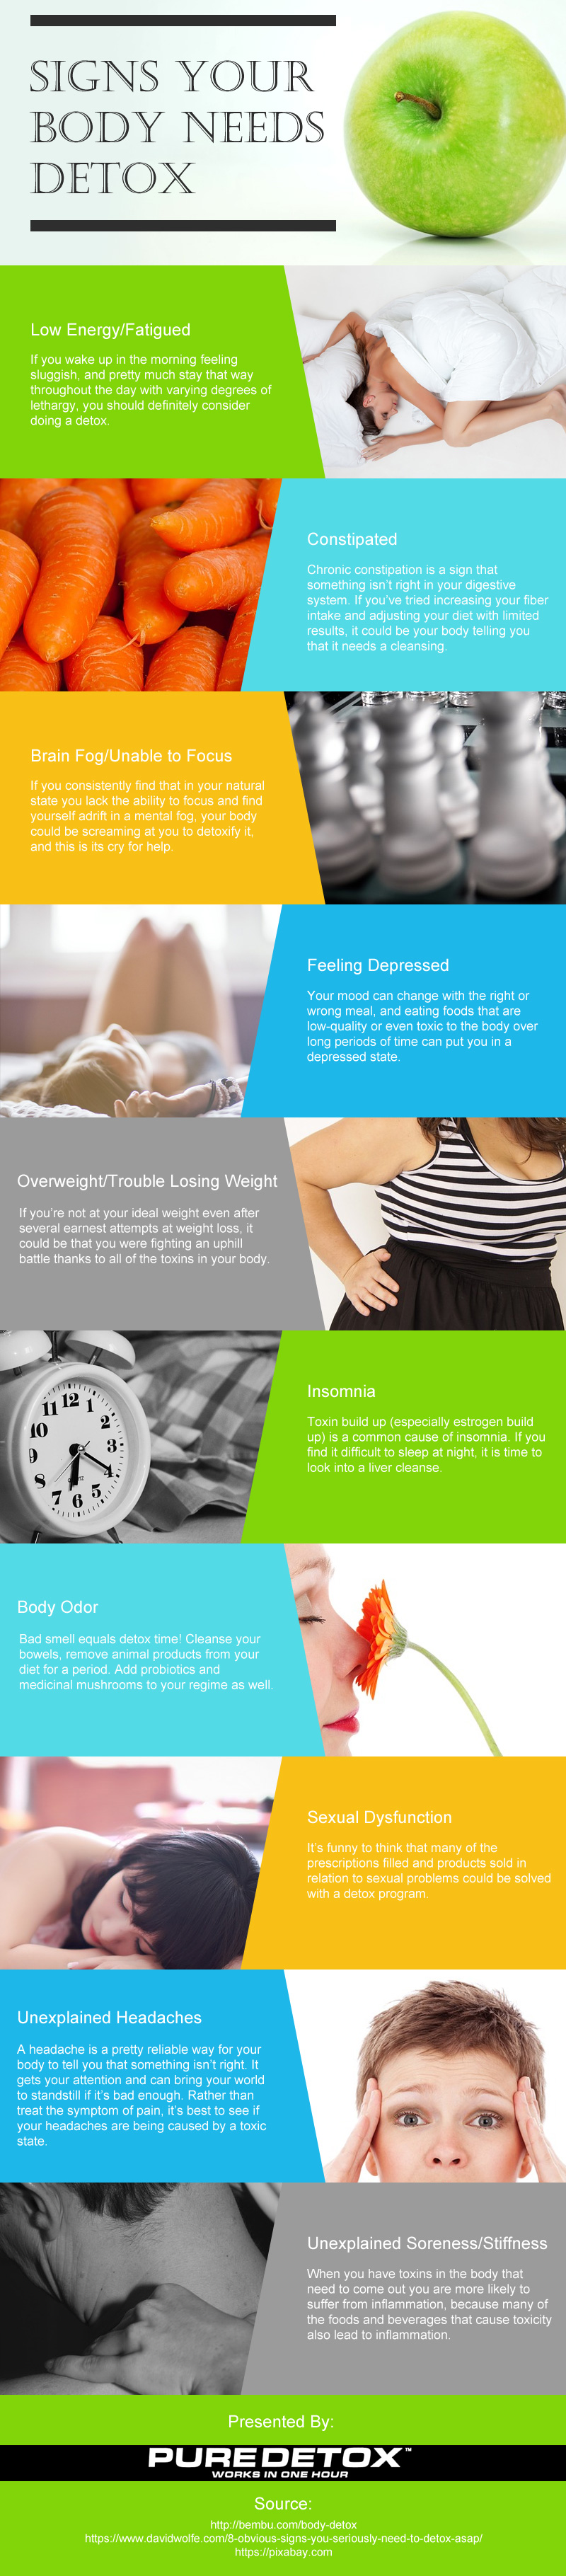 10 Signs Your Body Needs Detox! - Infographic